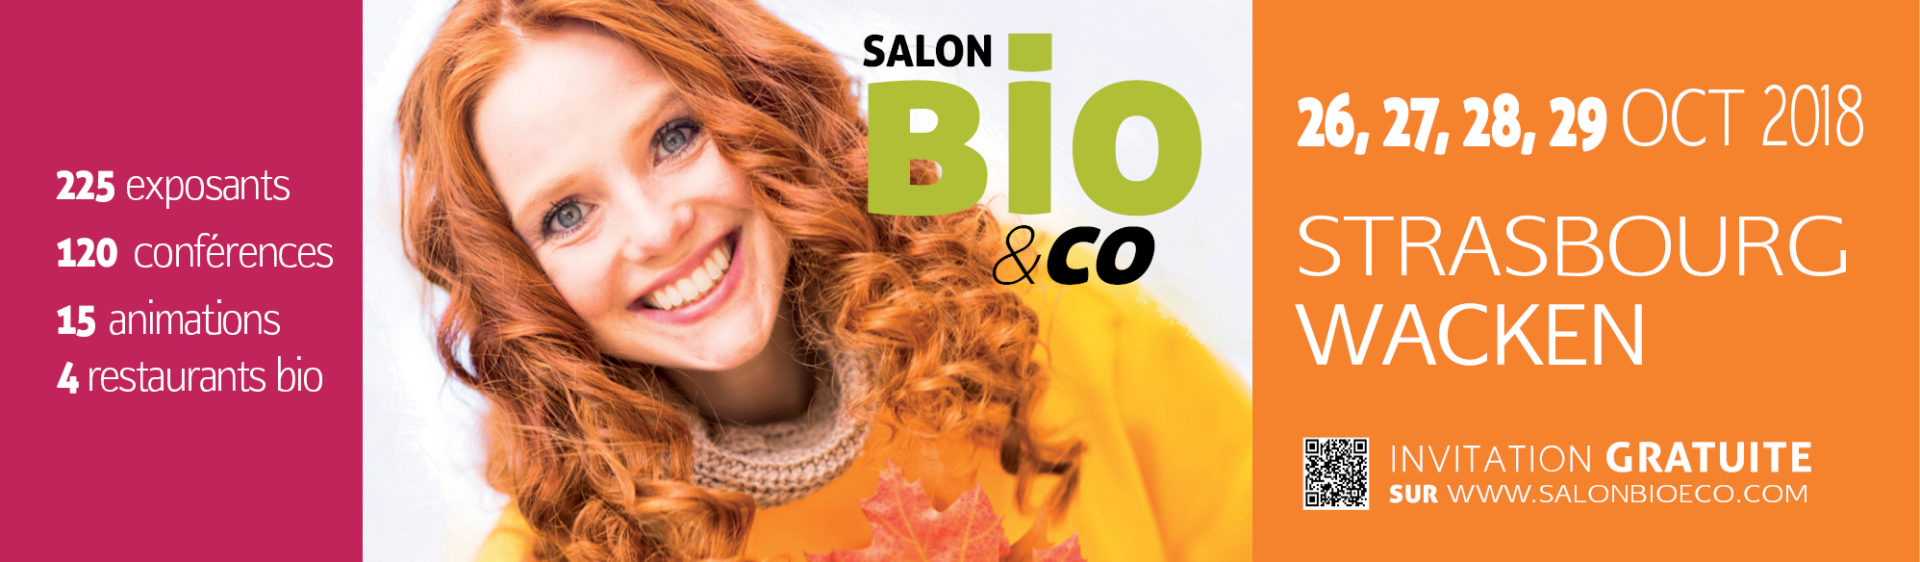 Salon Bio & Co du 26 au 29 octobre